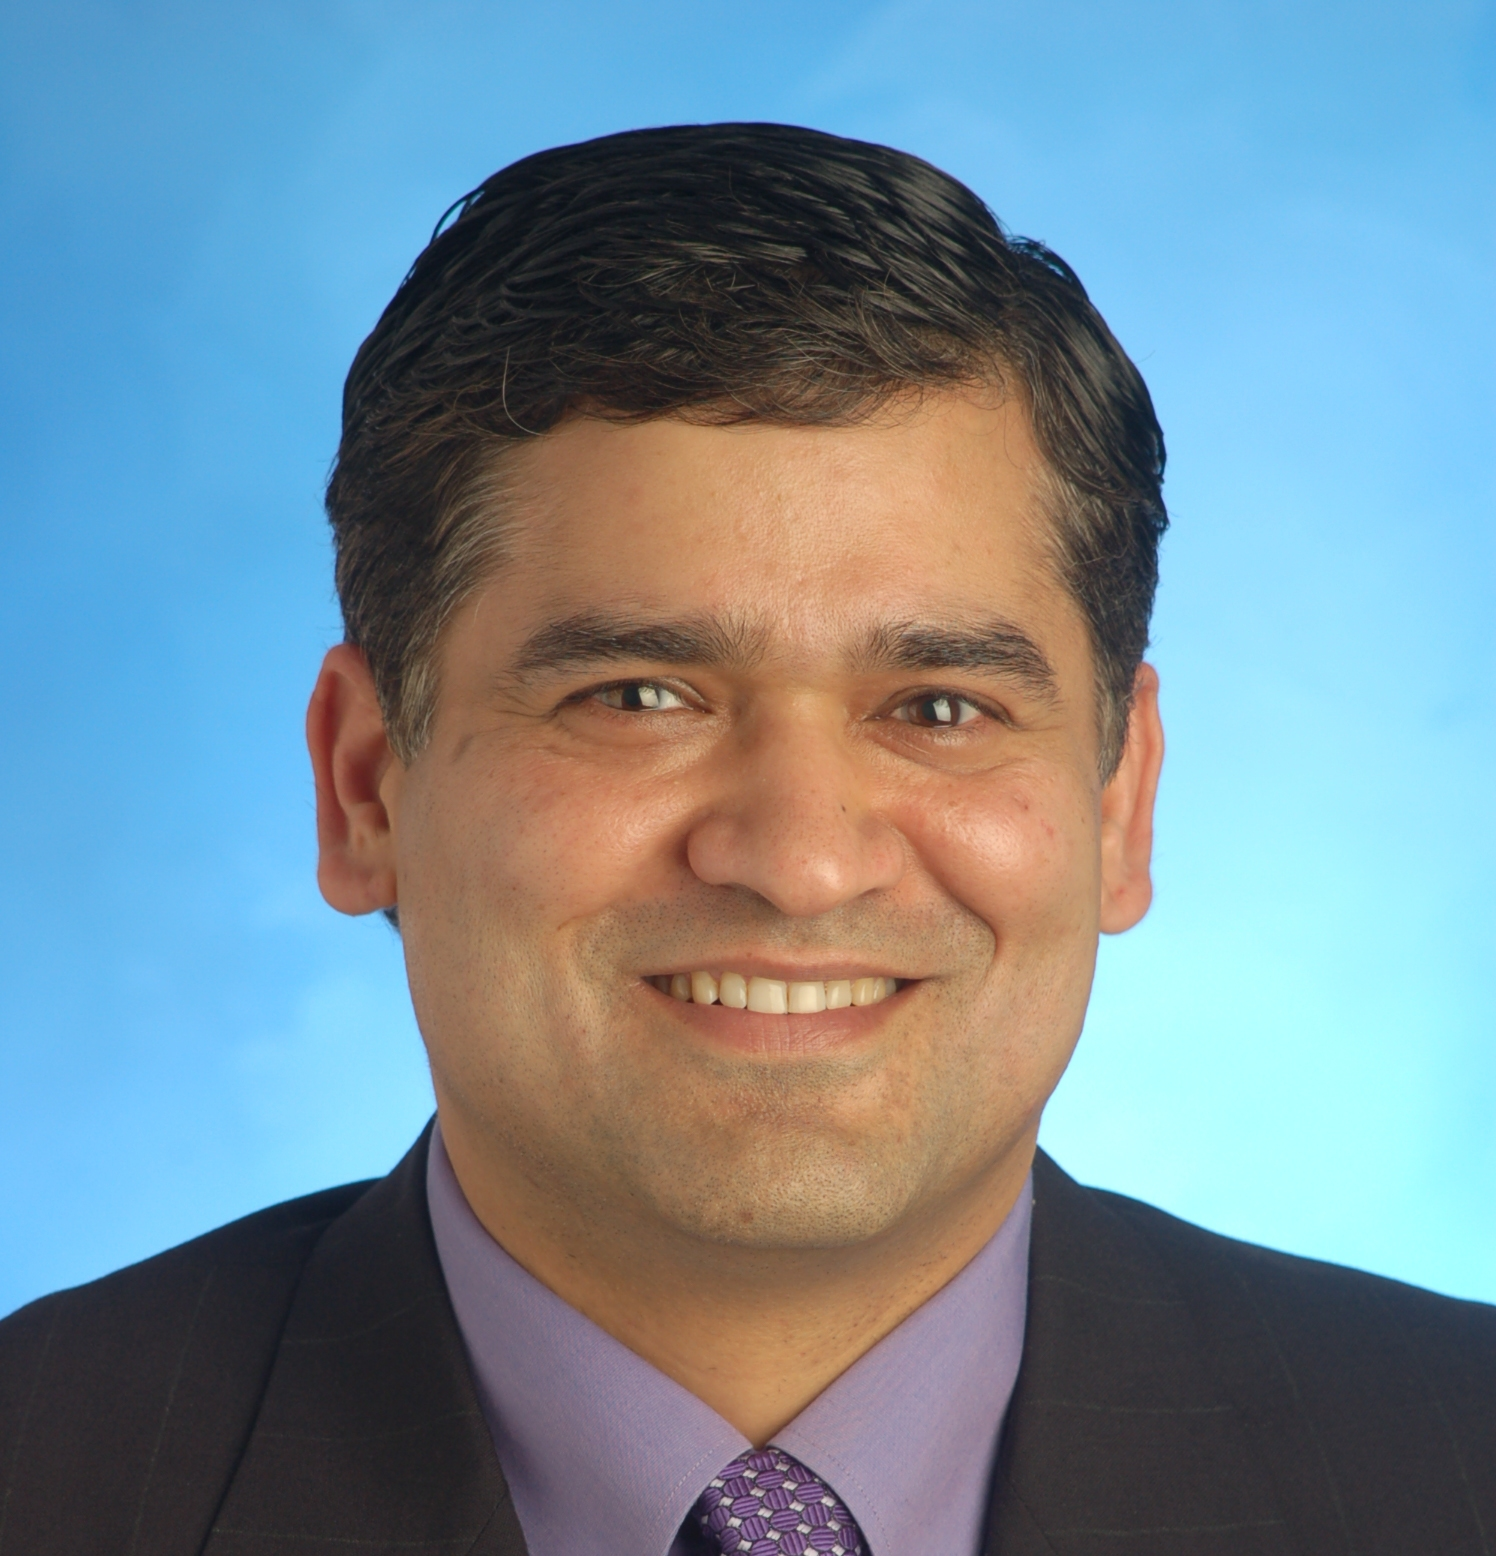 akhil jpg akhil wadhera m d is a very accomplished engineer and physician currently a senior physician at the kaiser permanente in fremont california